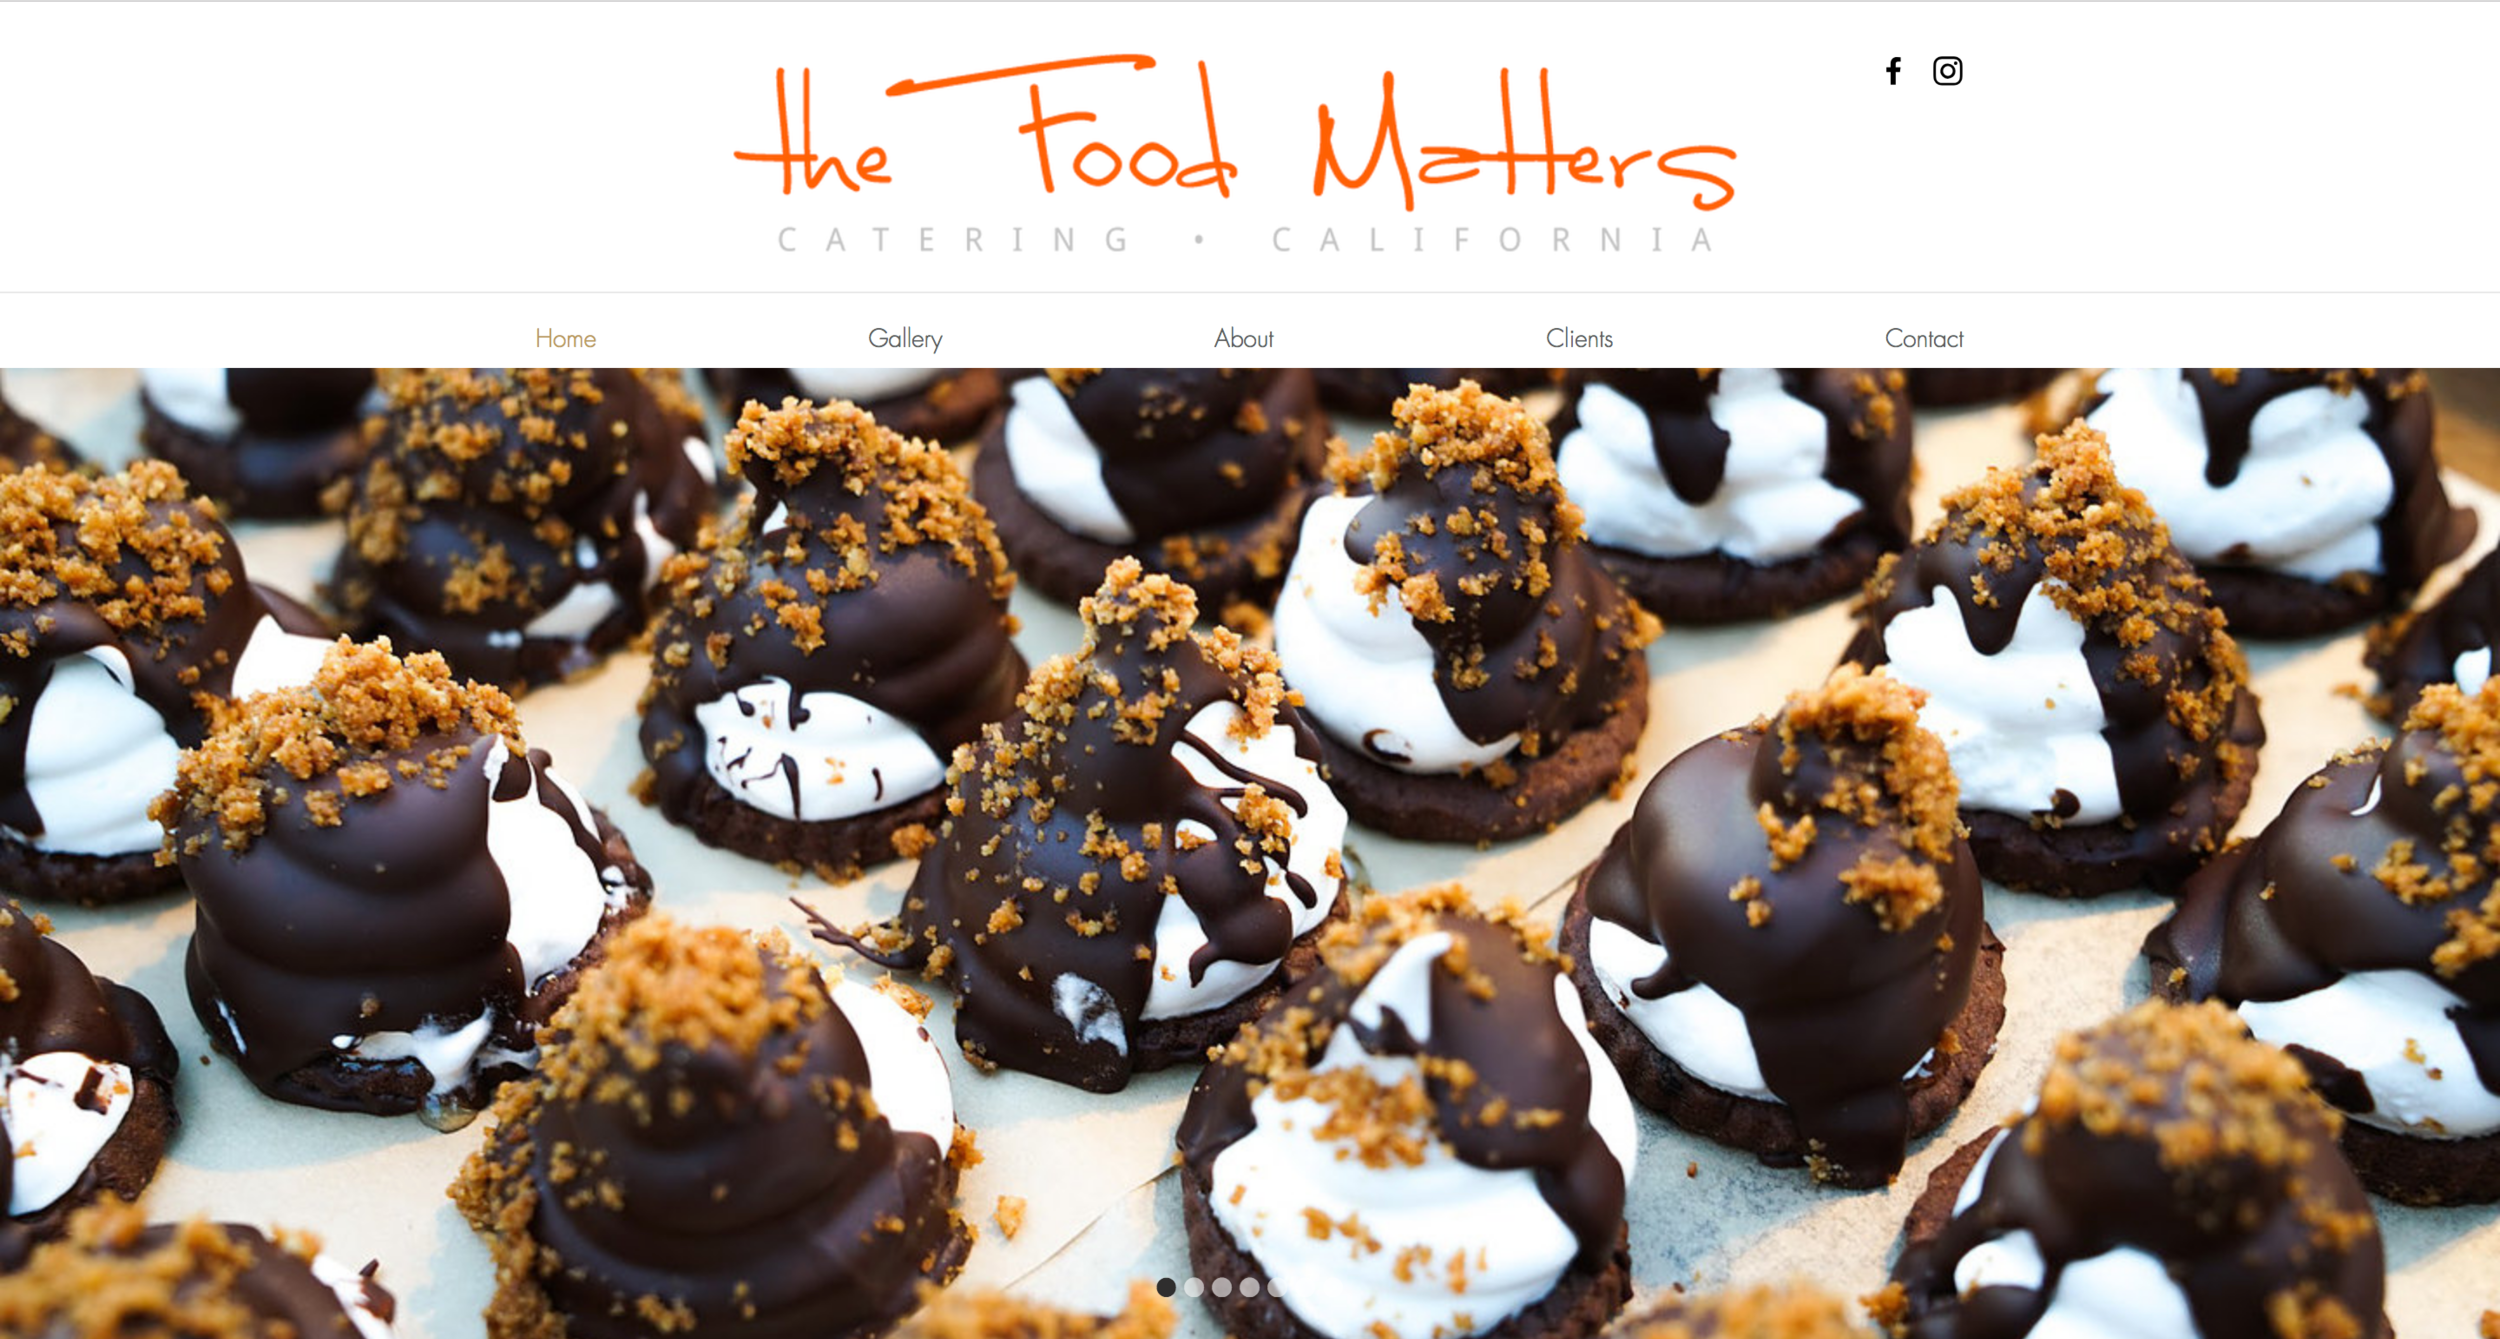 The Food Matters Catering Company Website https://www.thefoodmatters.com/